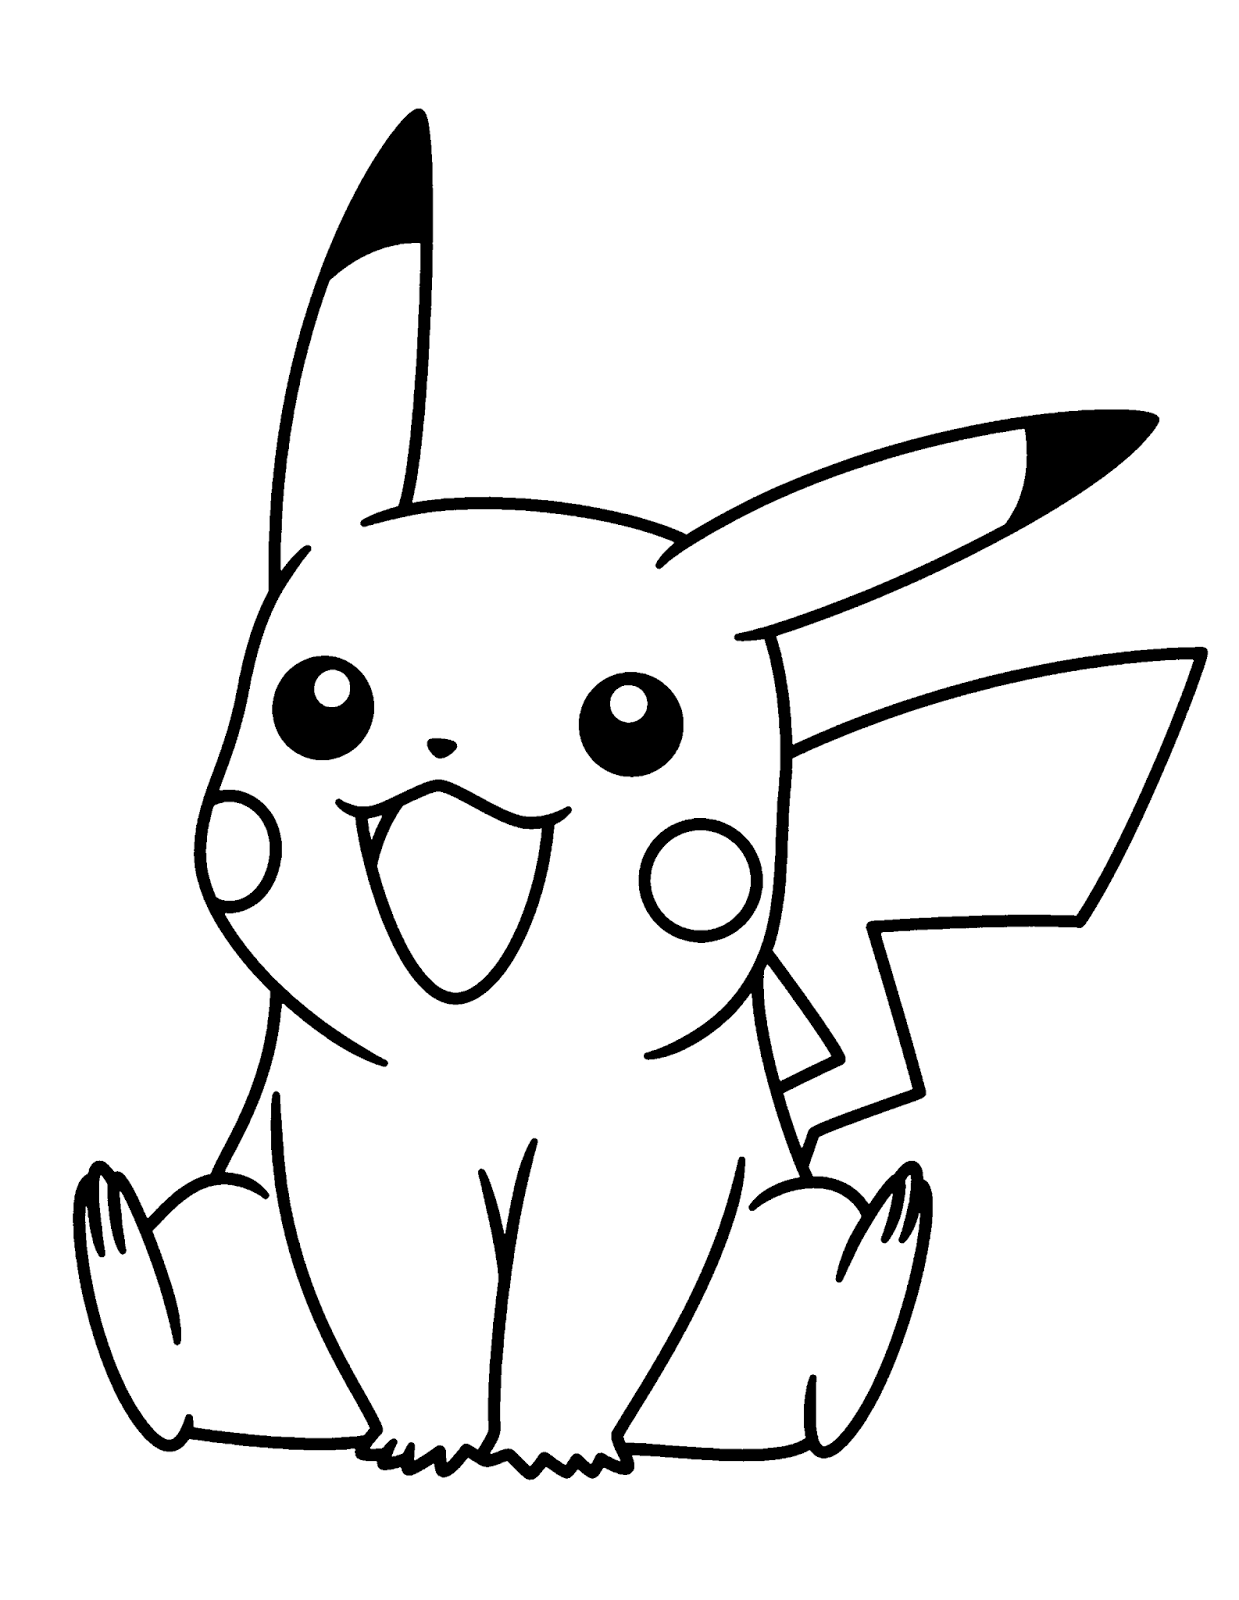 Versatile image regarding pokemon coloring pages free printable